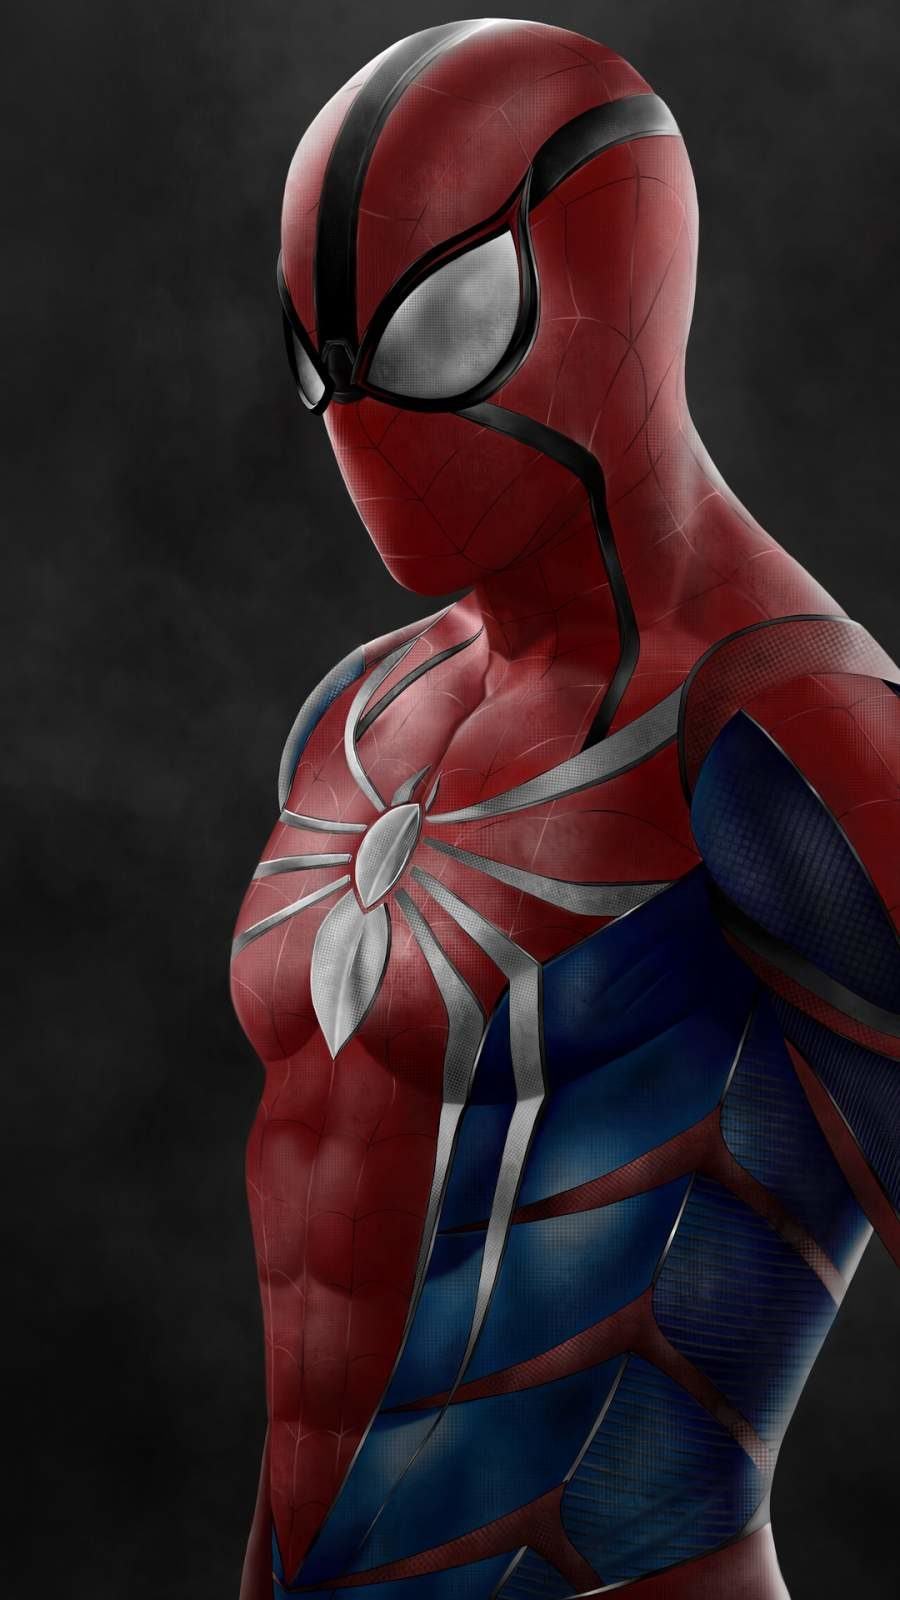 Amazing Spiderman Mobile Wallpapers